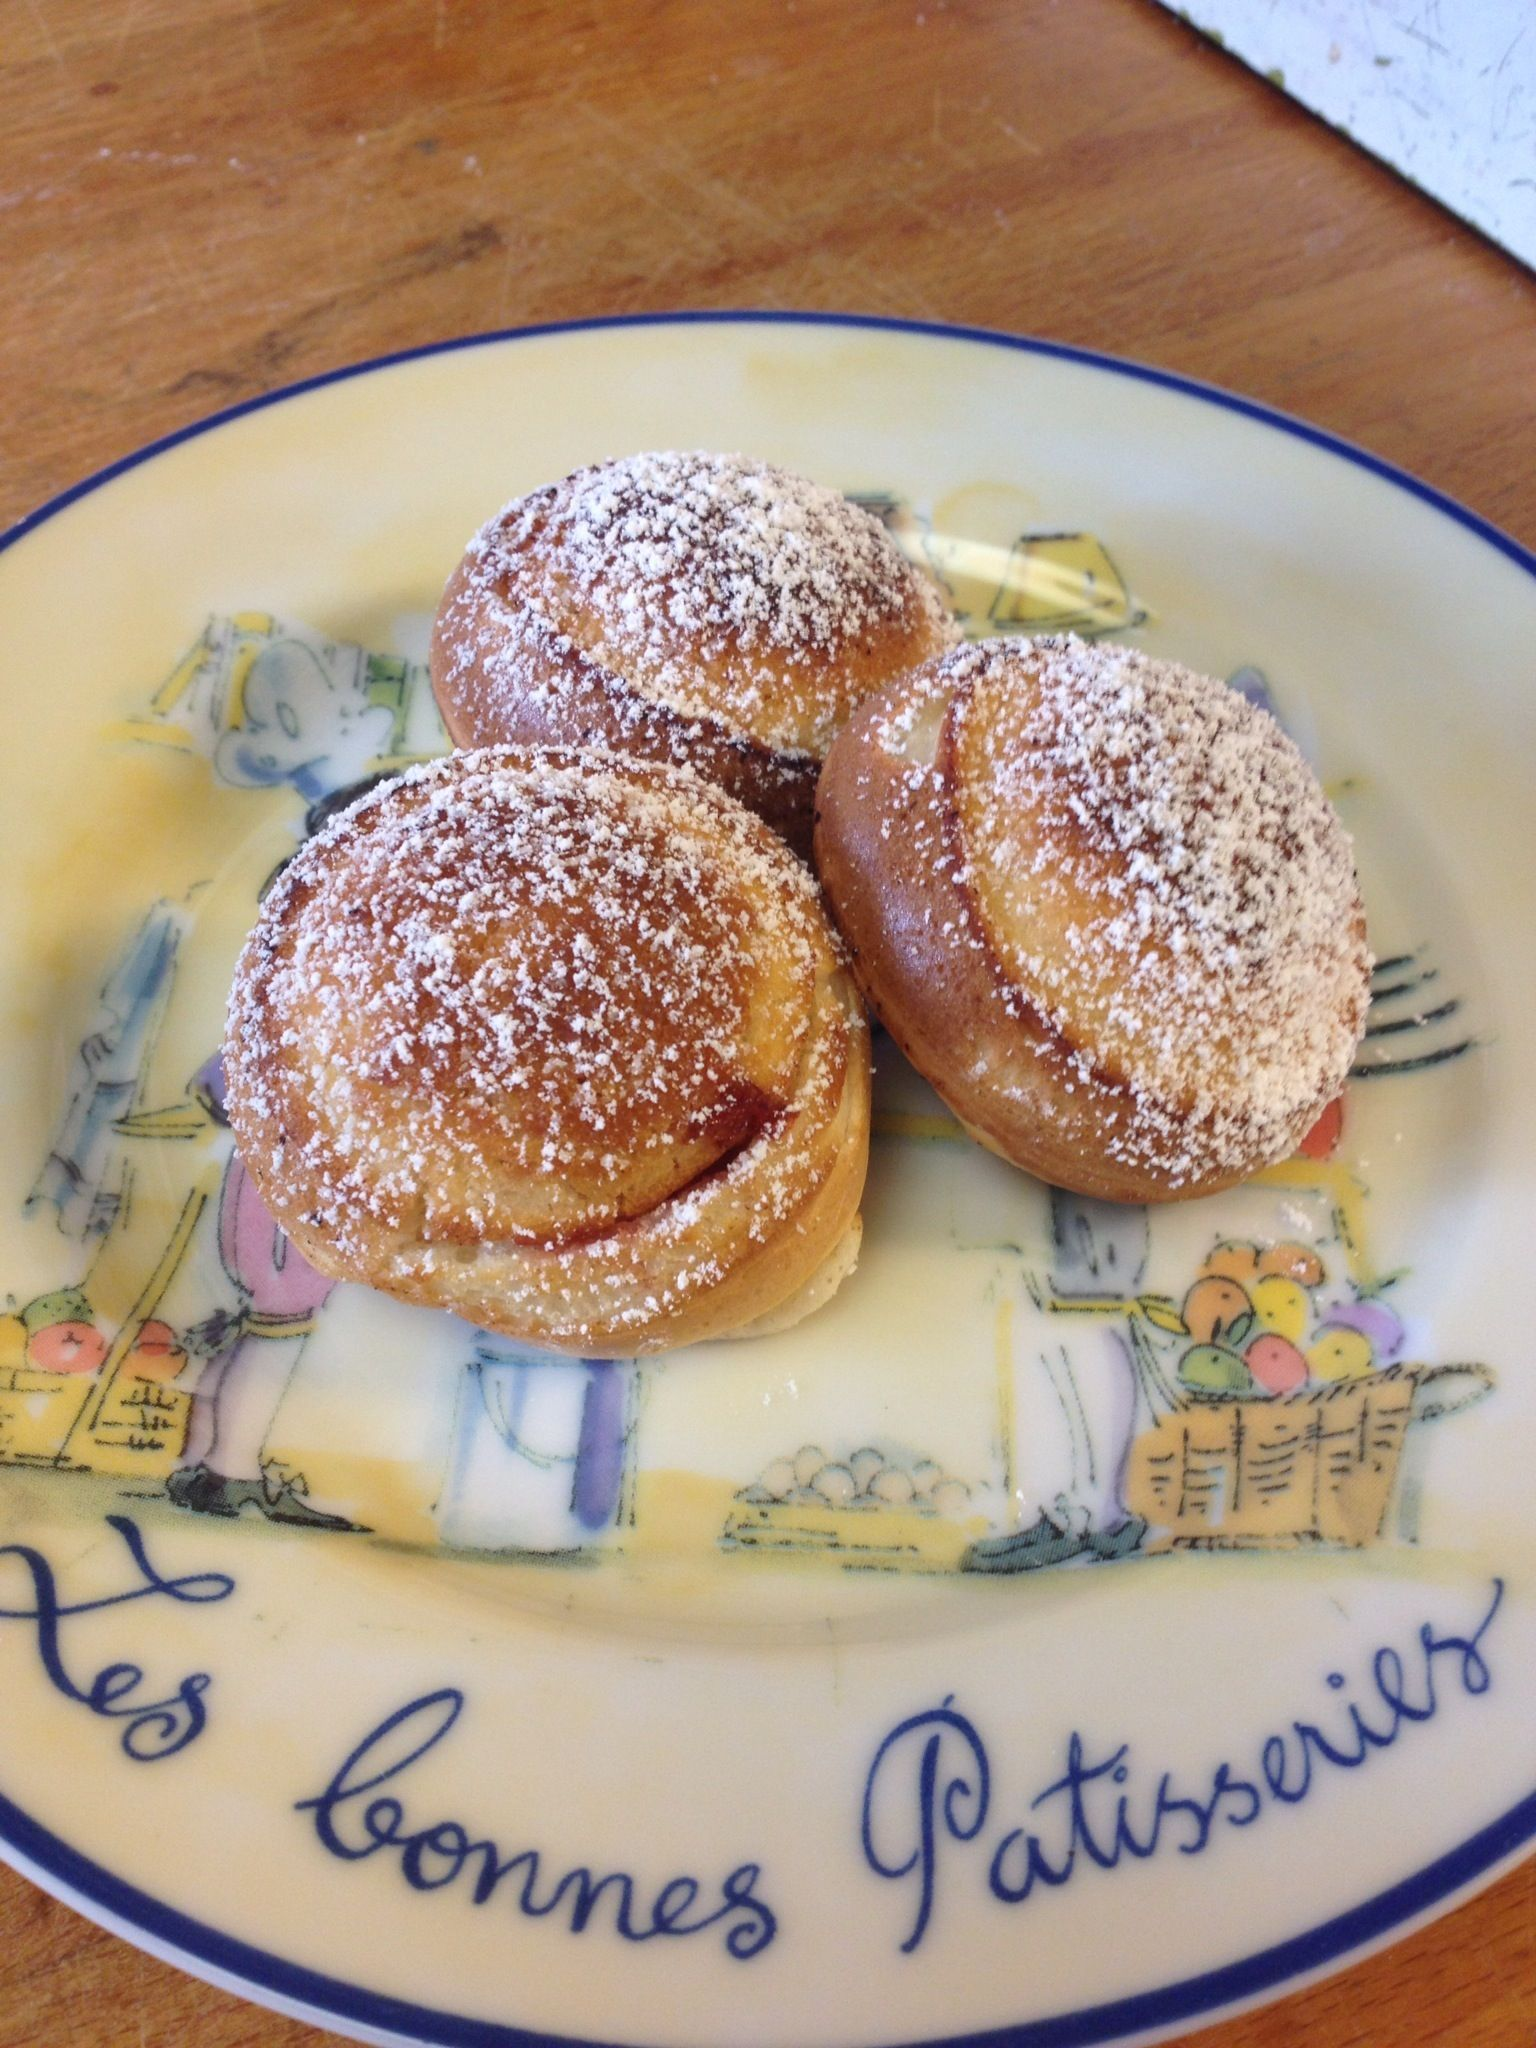 How To Make Delicious Ebelskivers Aebleskiver Recipe Ebelskiver Recipe Aebleskiver Recipe Food